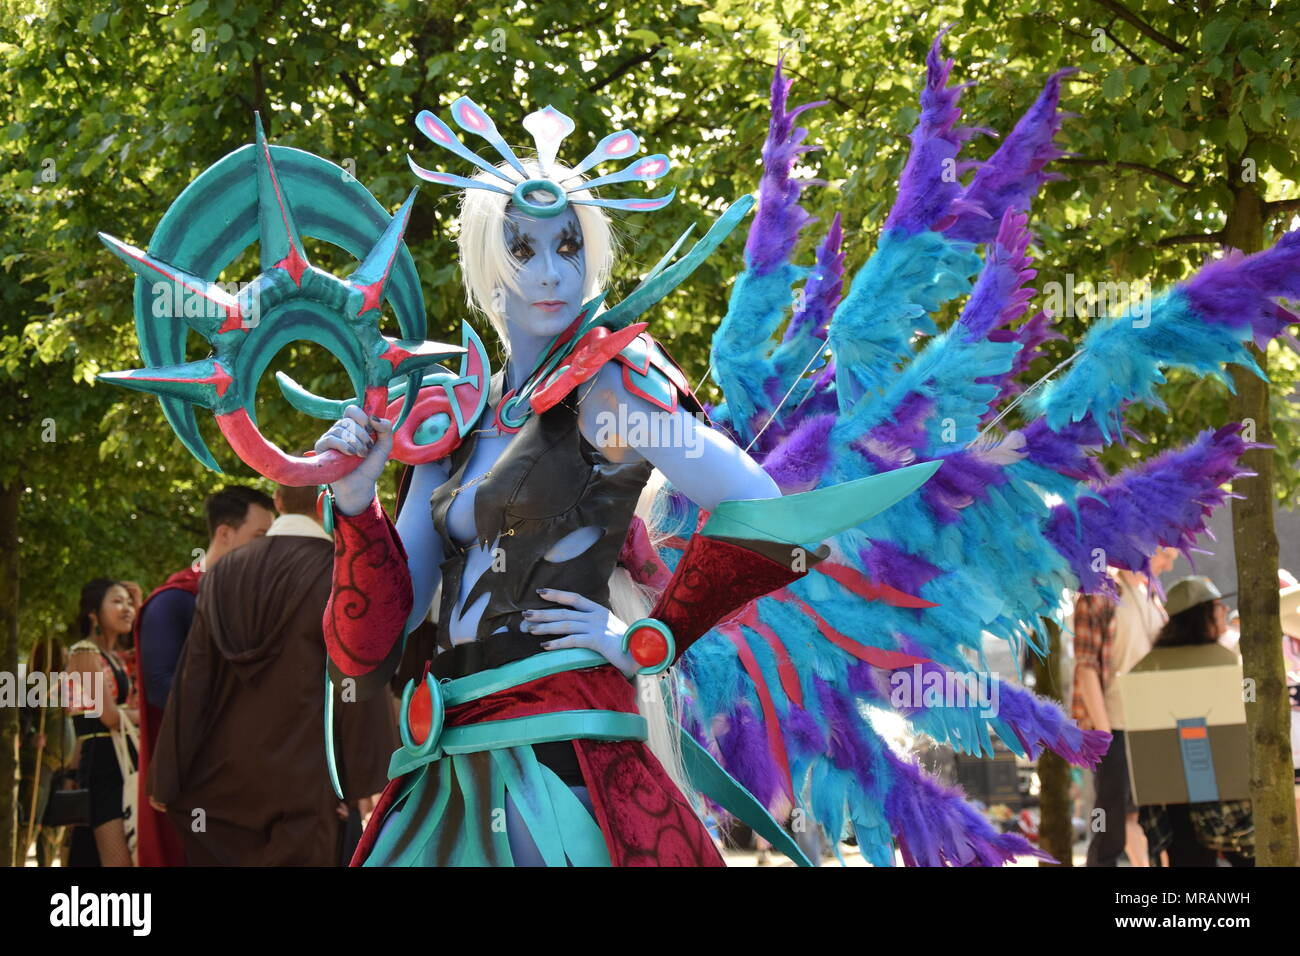 London, UK. 26th May, 2018. Comic Con Cosplay London 2018 Credit: WatfordLondon/Alamy Live News - Stock Image